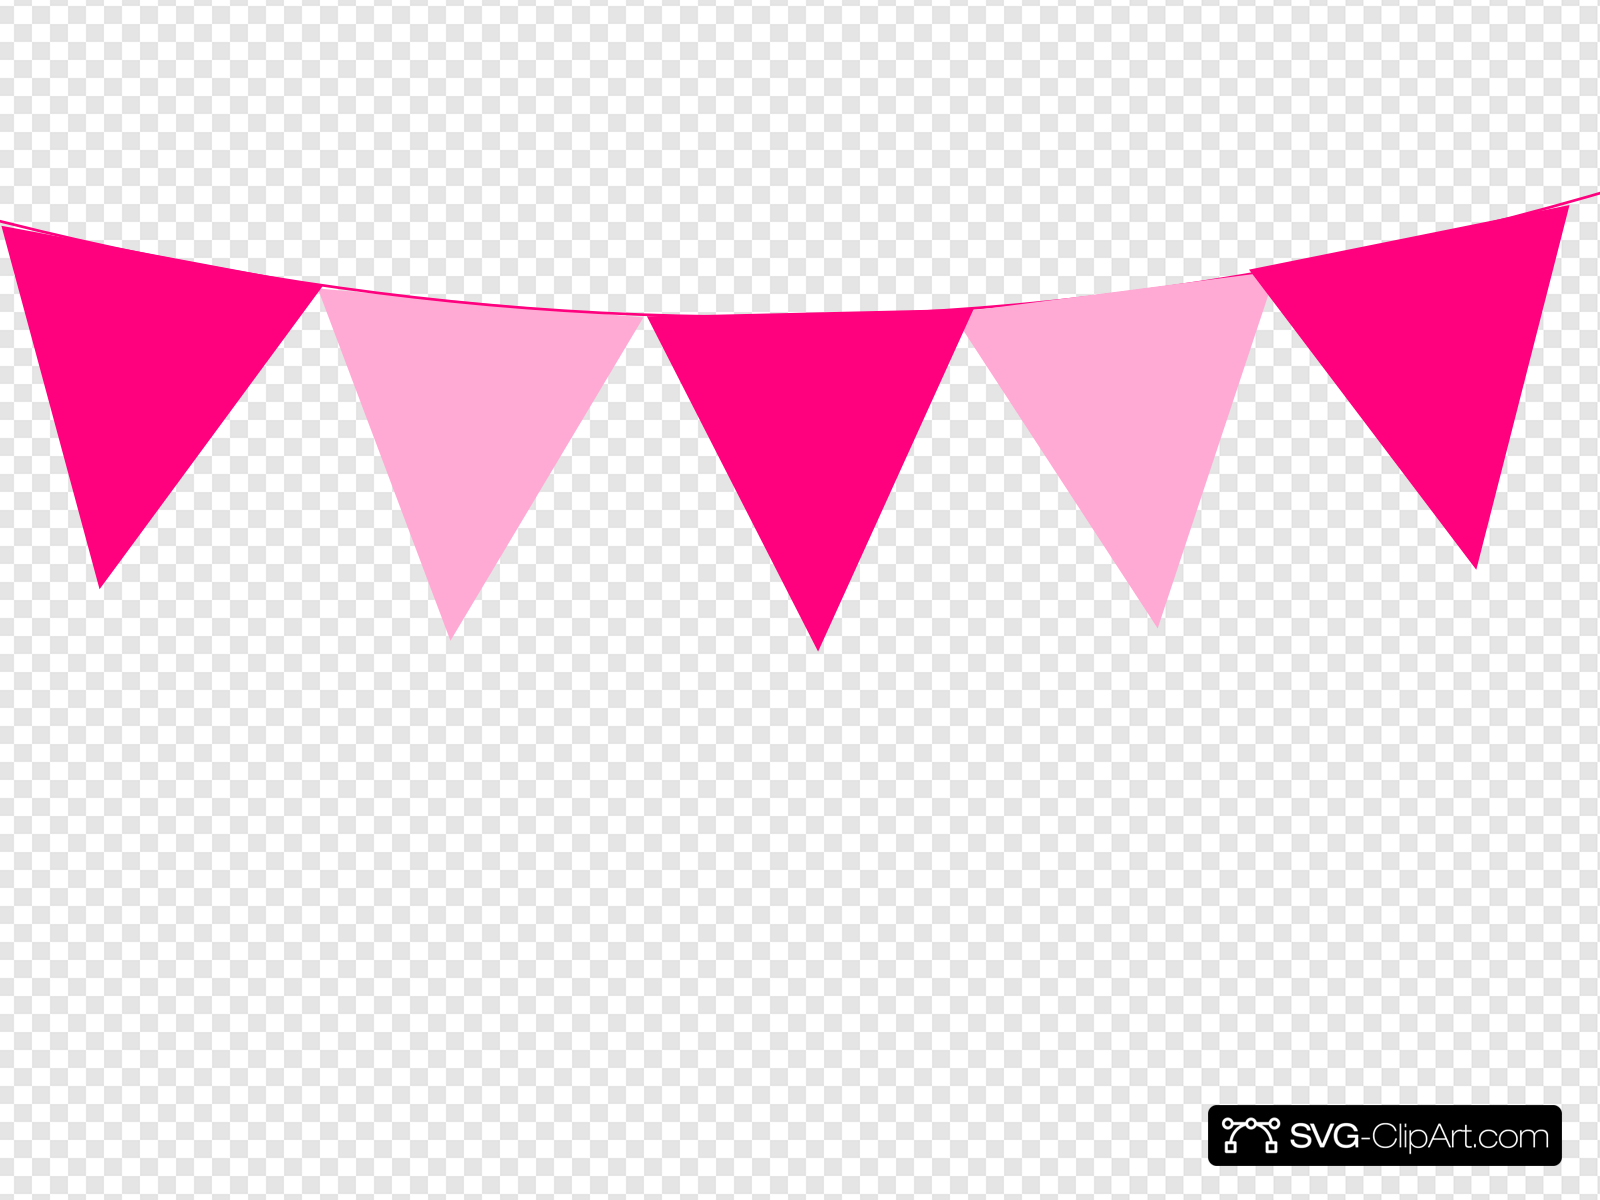 Pink Bunting Clip art, Icon and SVG.